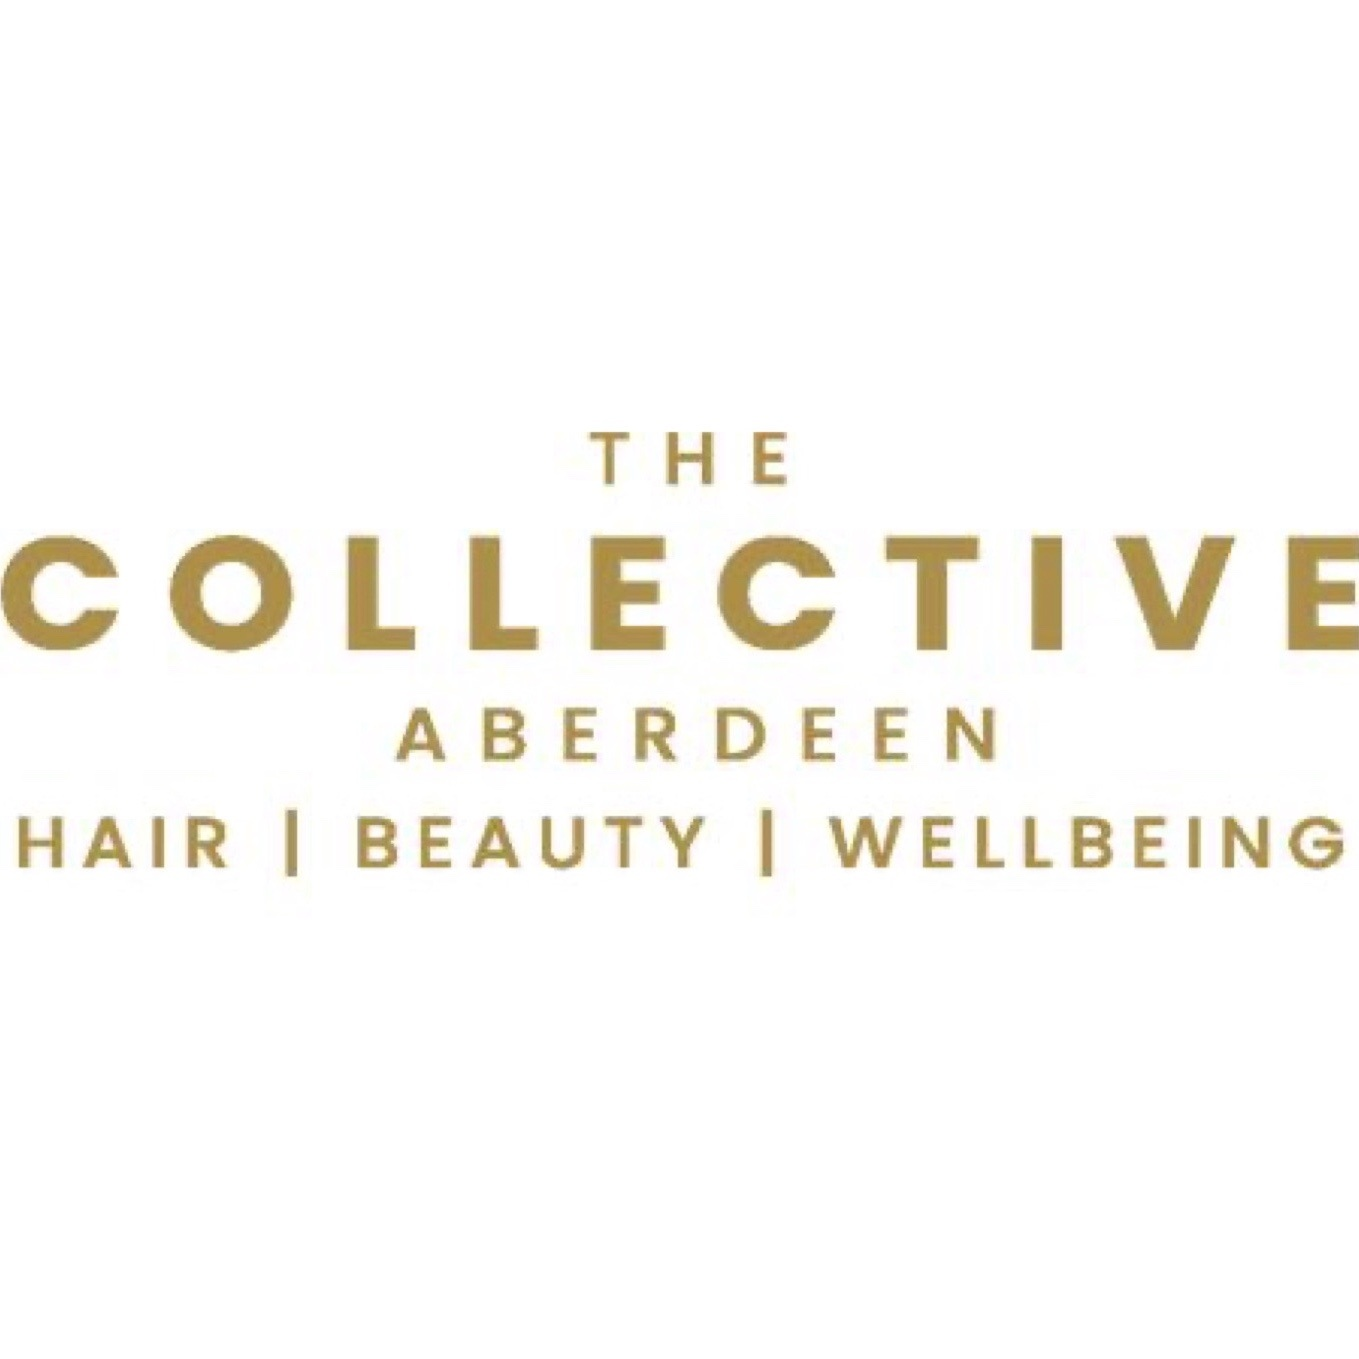 The Collective Aberdeen